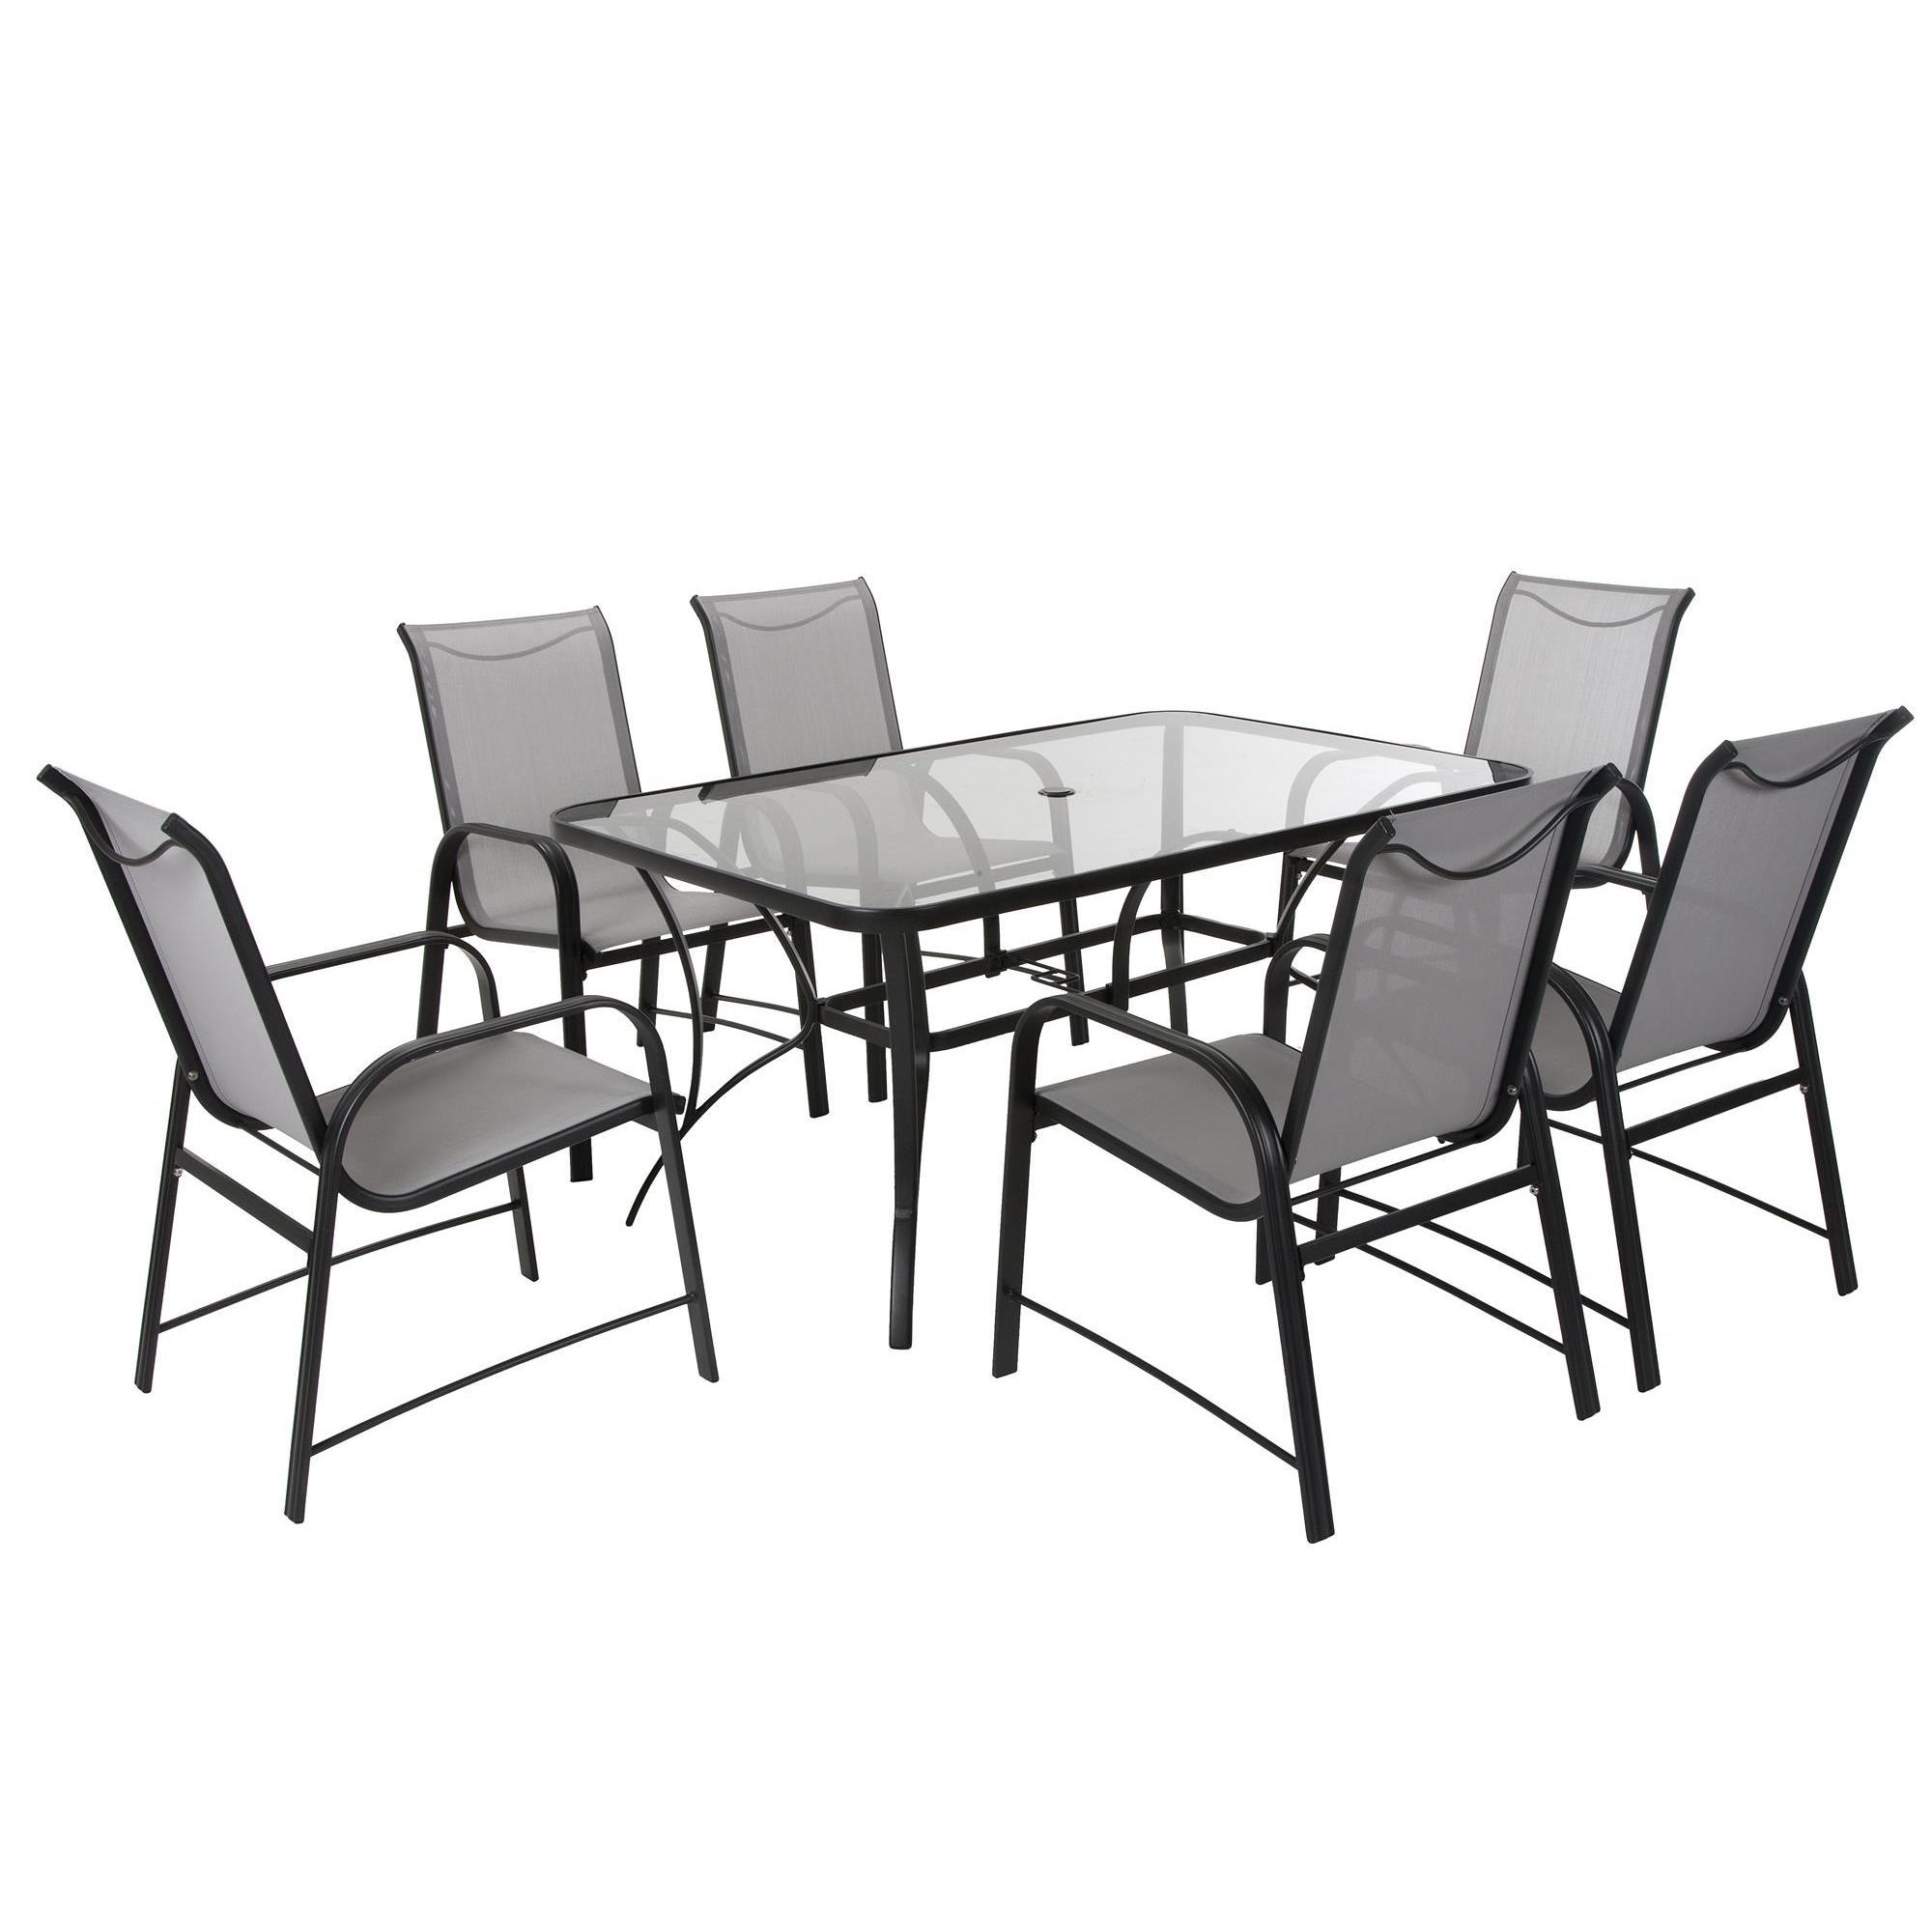 c5470e1ceda2 Shop COSCO Outdoor Living 7-piece Paloma Steel Grey Patio Dining Set with Tempered  Glass Table Top - Free Shipping Today - Overstock - 14174226